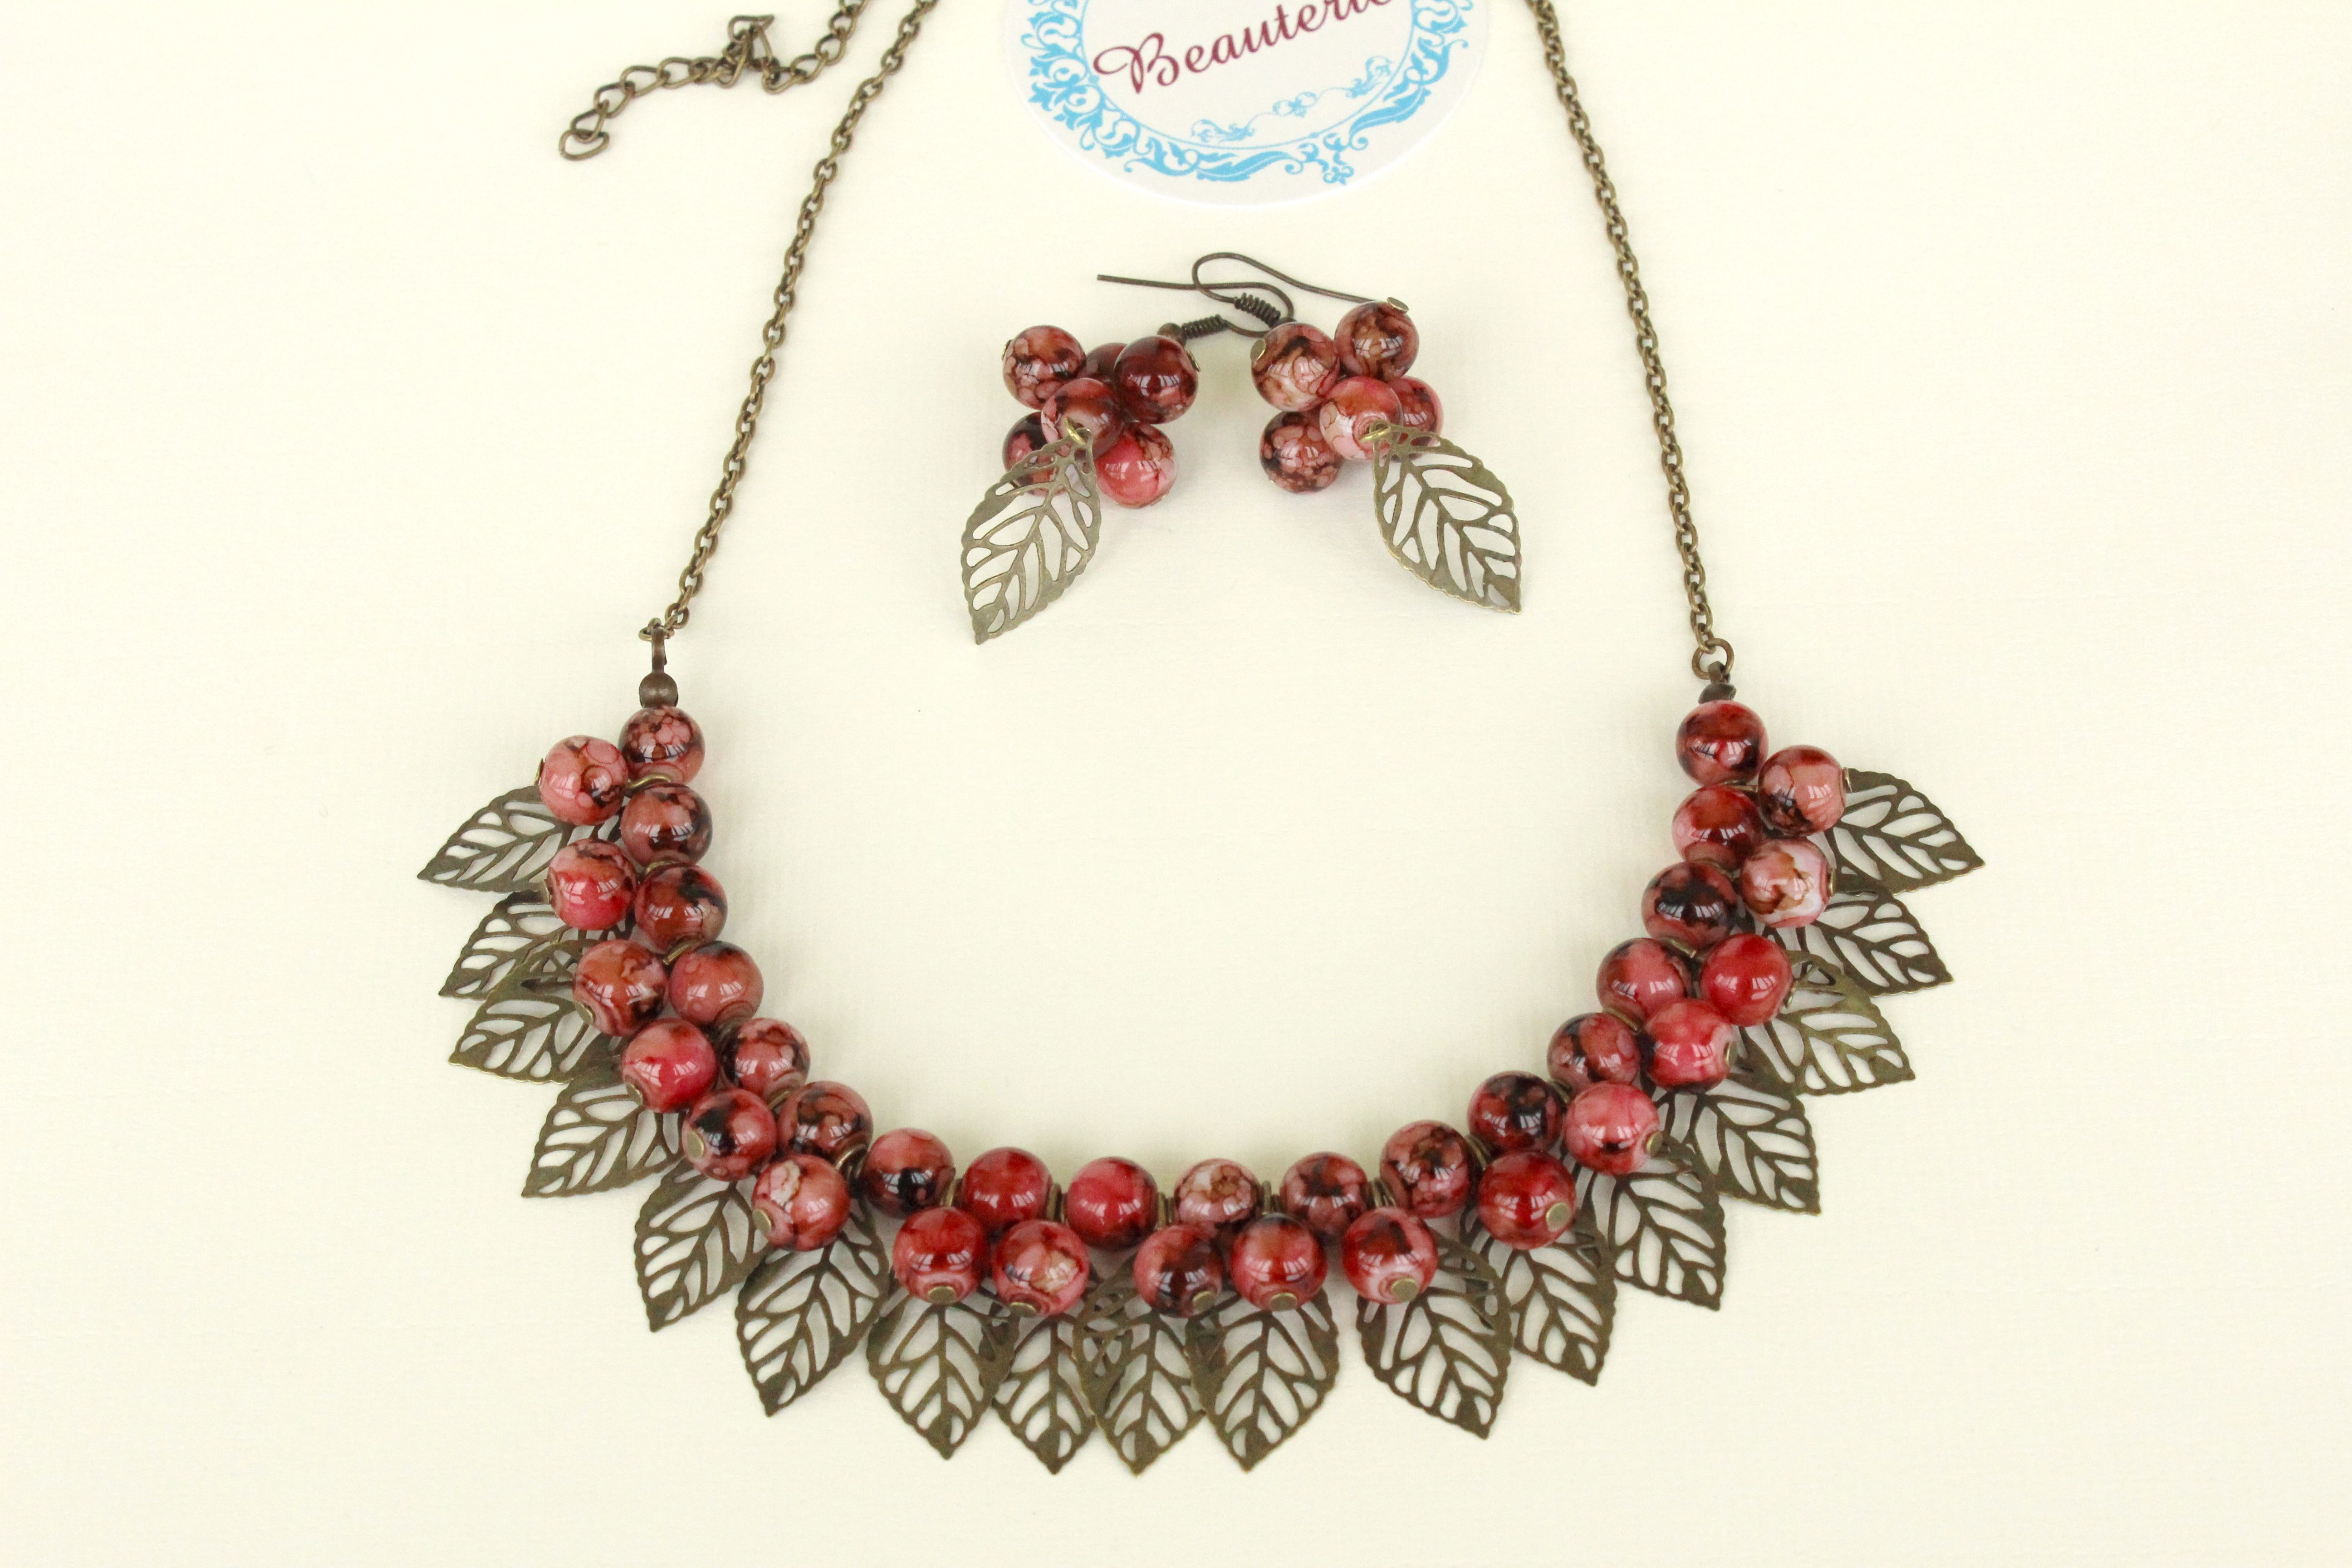 Leaves beaded necklace and earrings